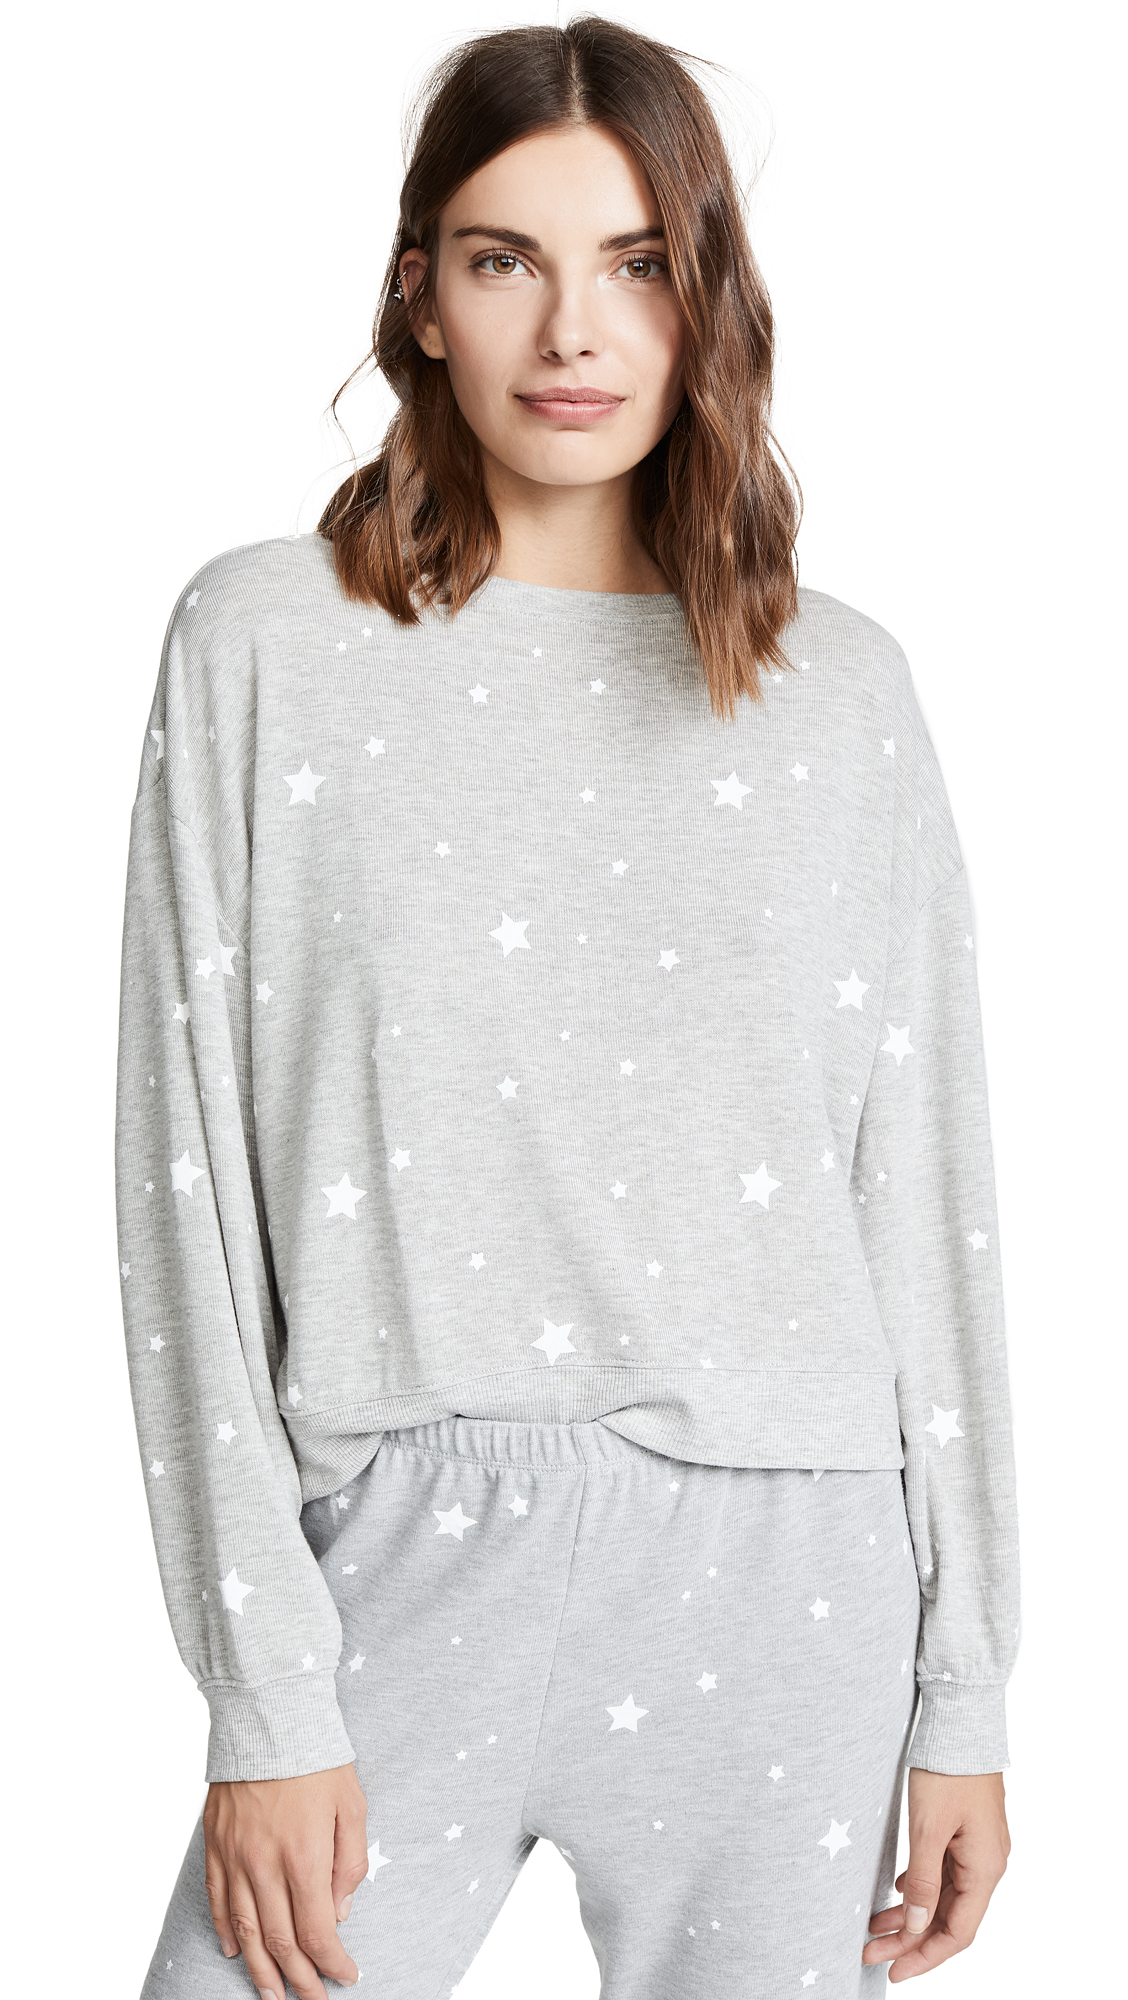 Z SUPPLY Star Print Pull Over in Heather Grey